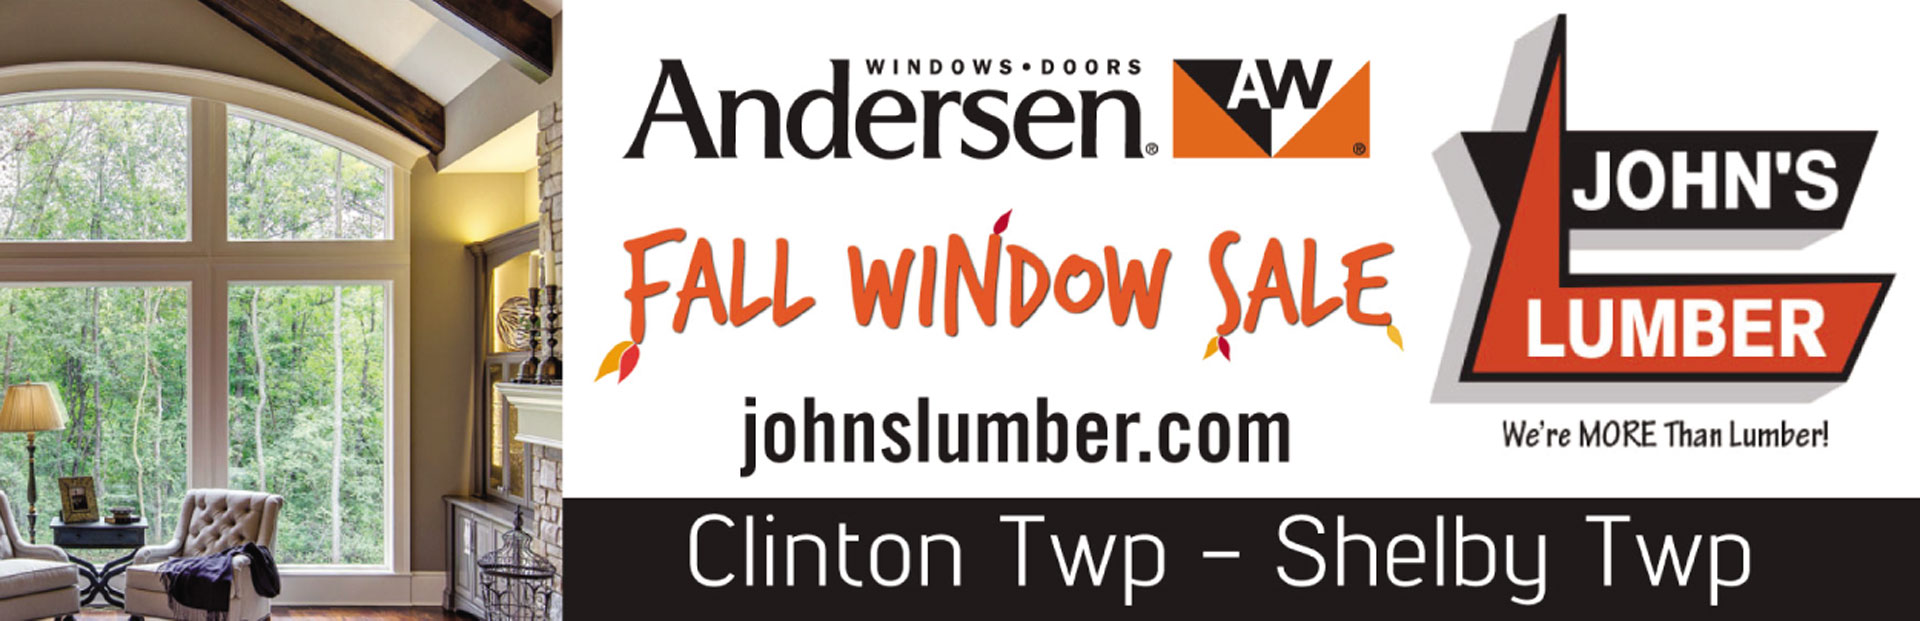 Andersen Window Sale John S Lumber